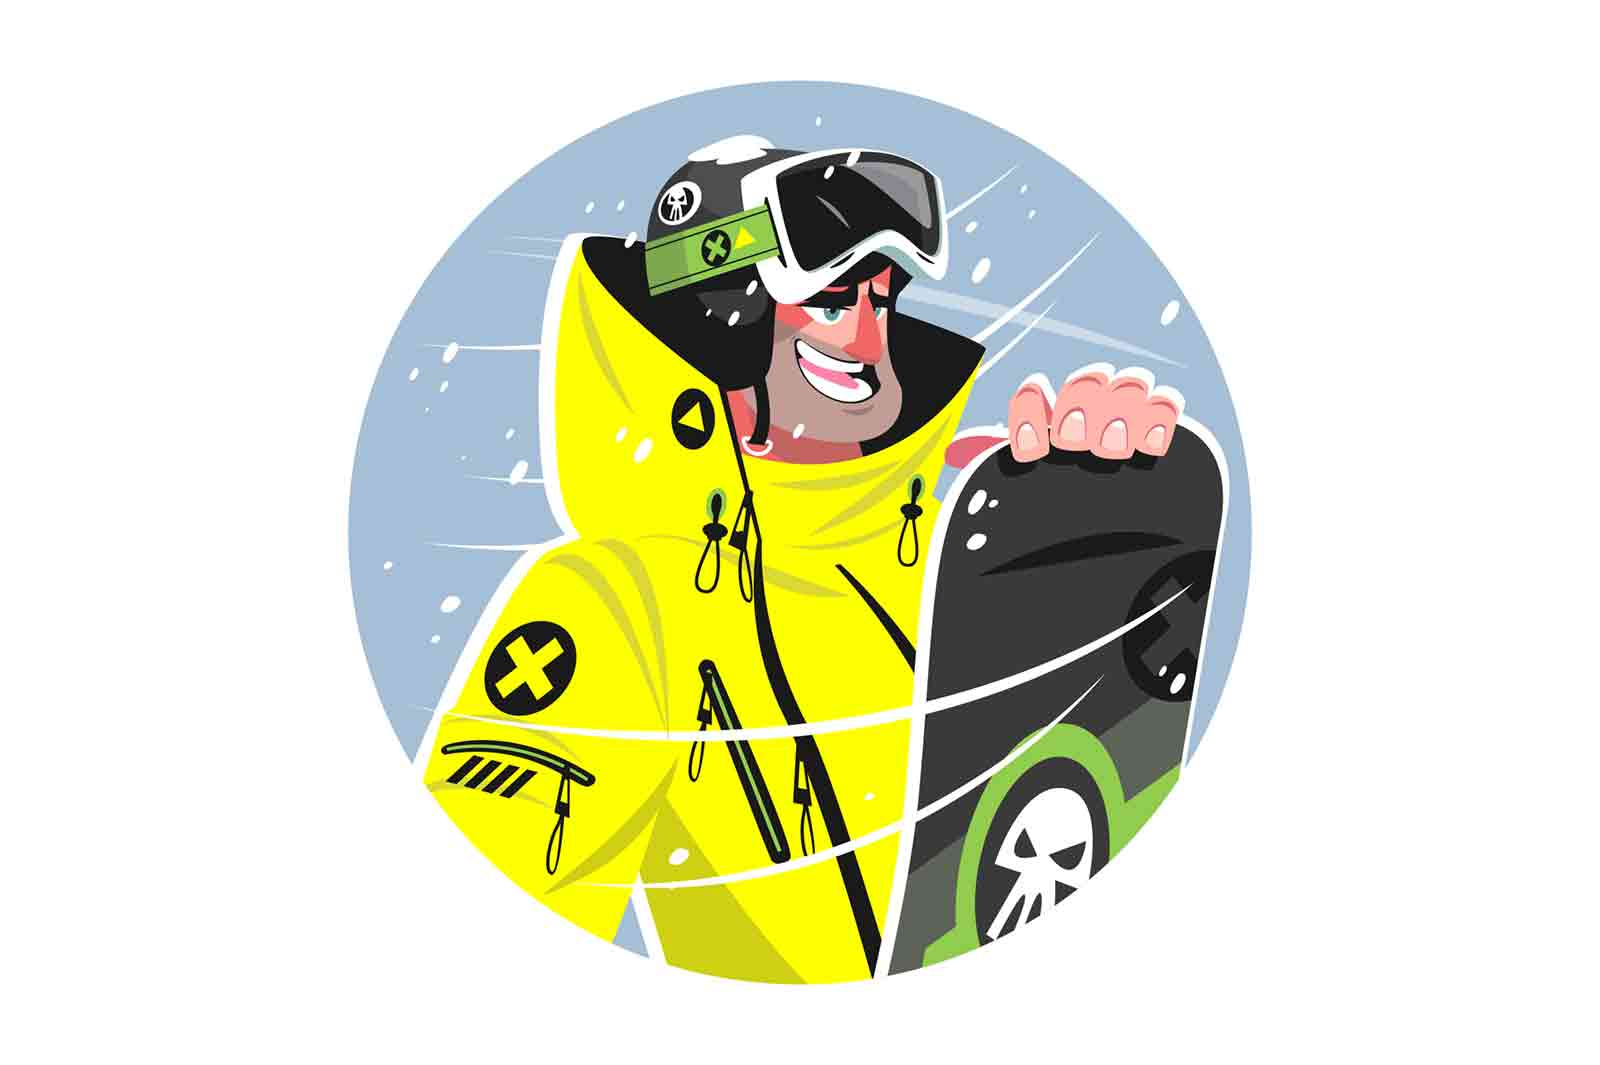 Happy man with snowboard vector illustration. Cheerful person ready for winter ride on snowboard flat style. Sport activity and holiday fun concept. Isolated on white background